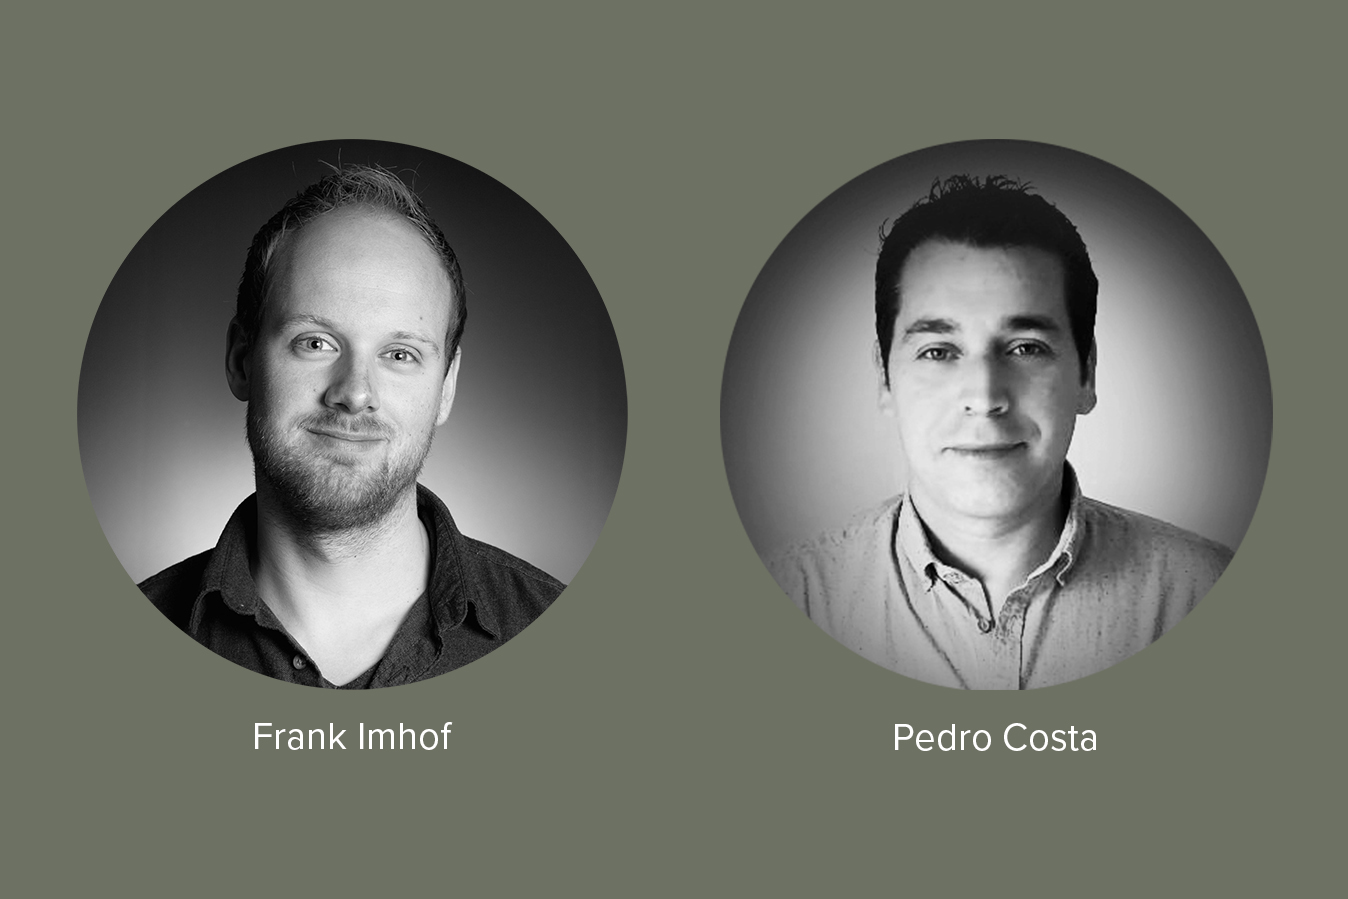 Frank Imhof appointed as VP Customer Success, Pedro Costa as Country Manager Portugal